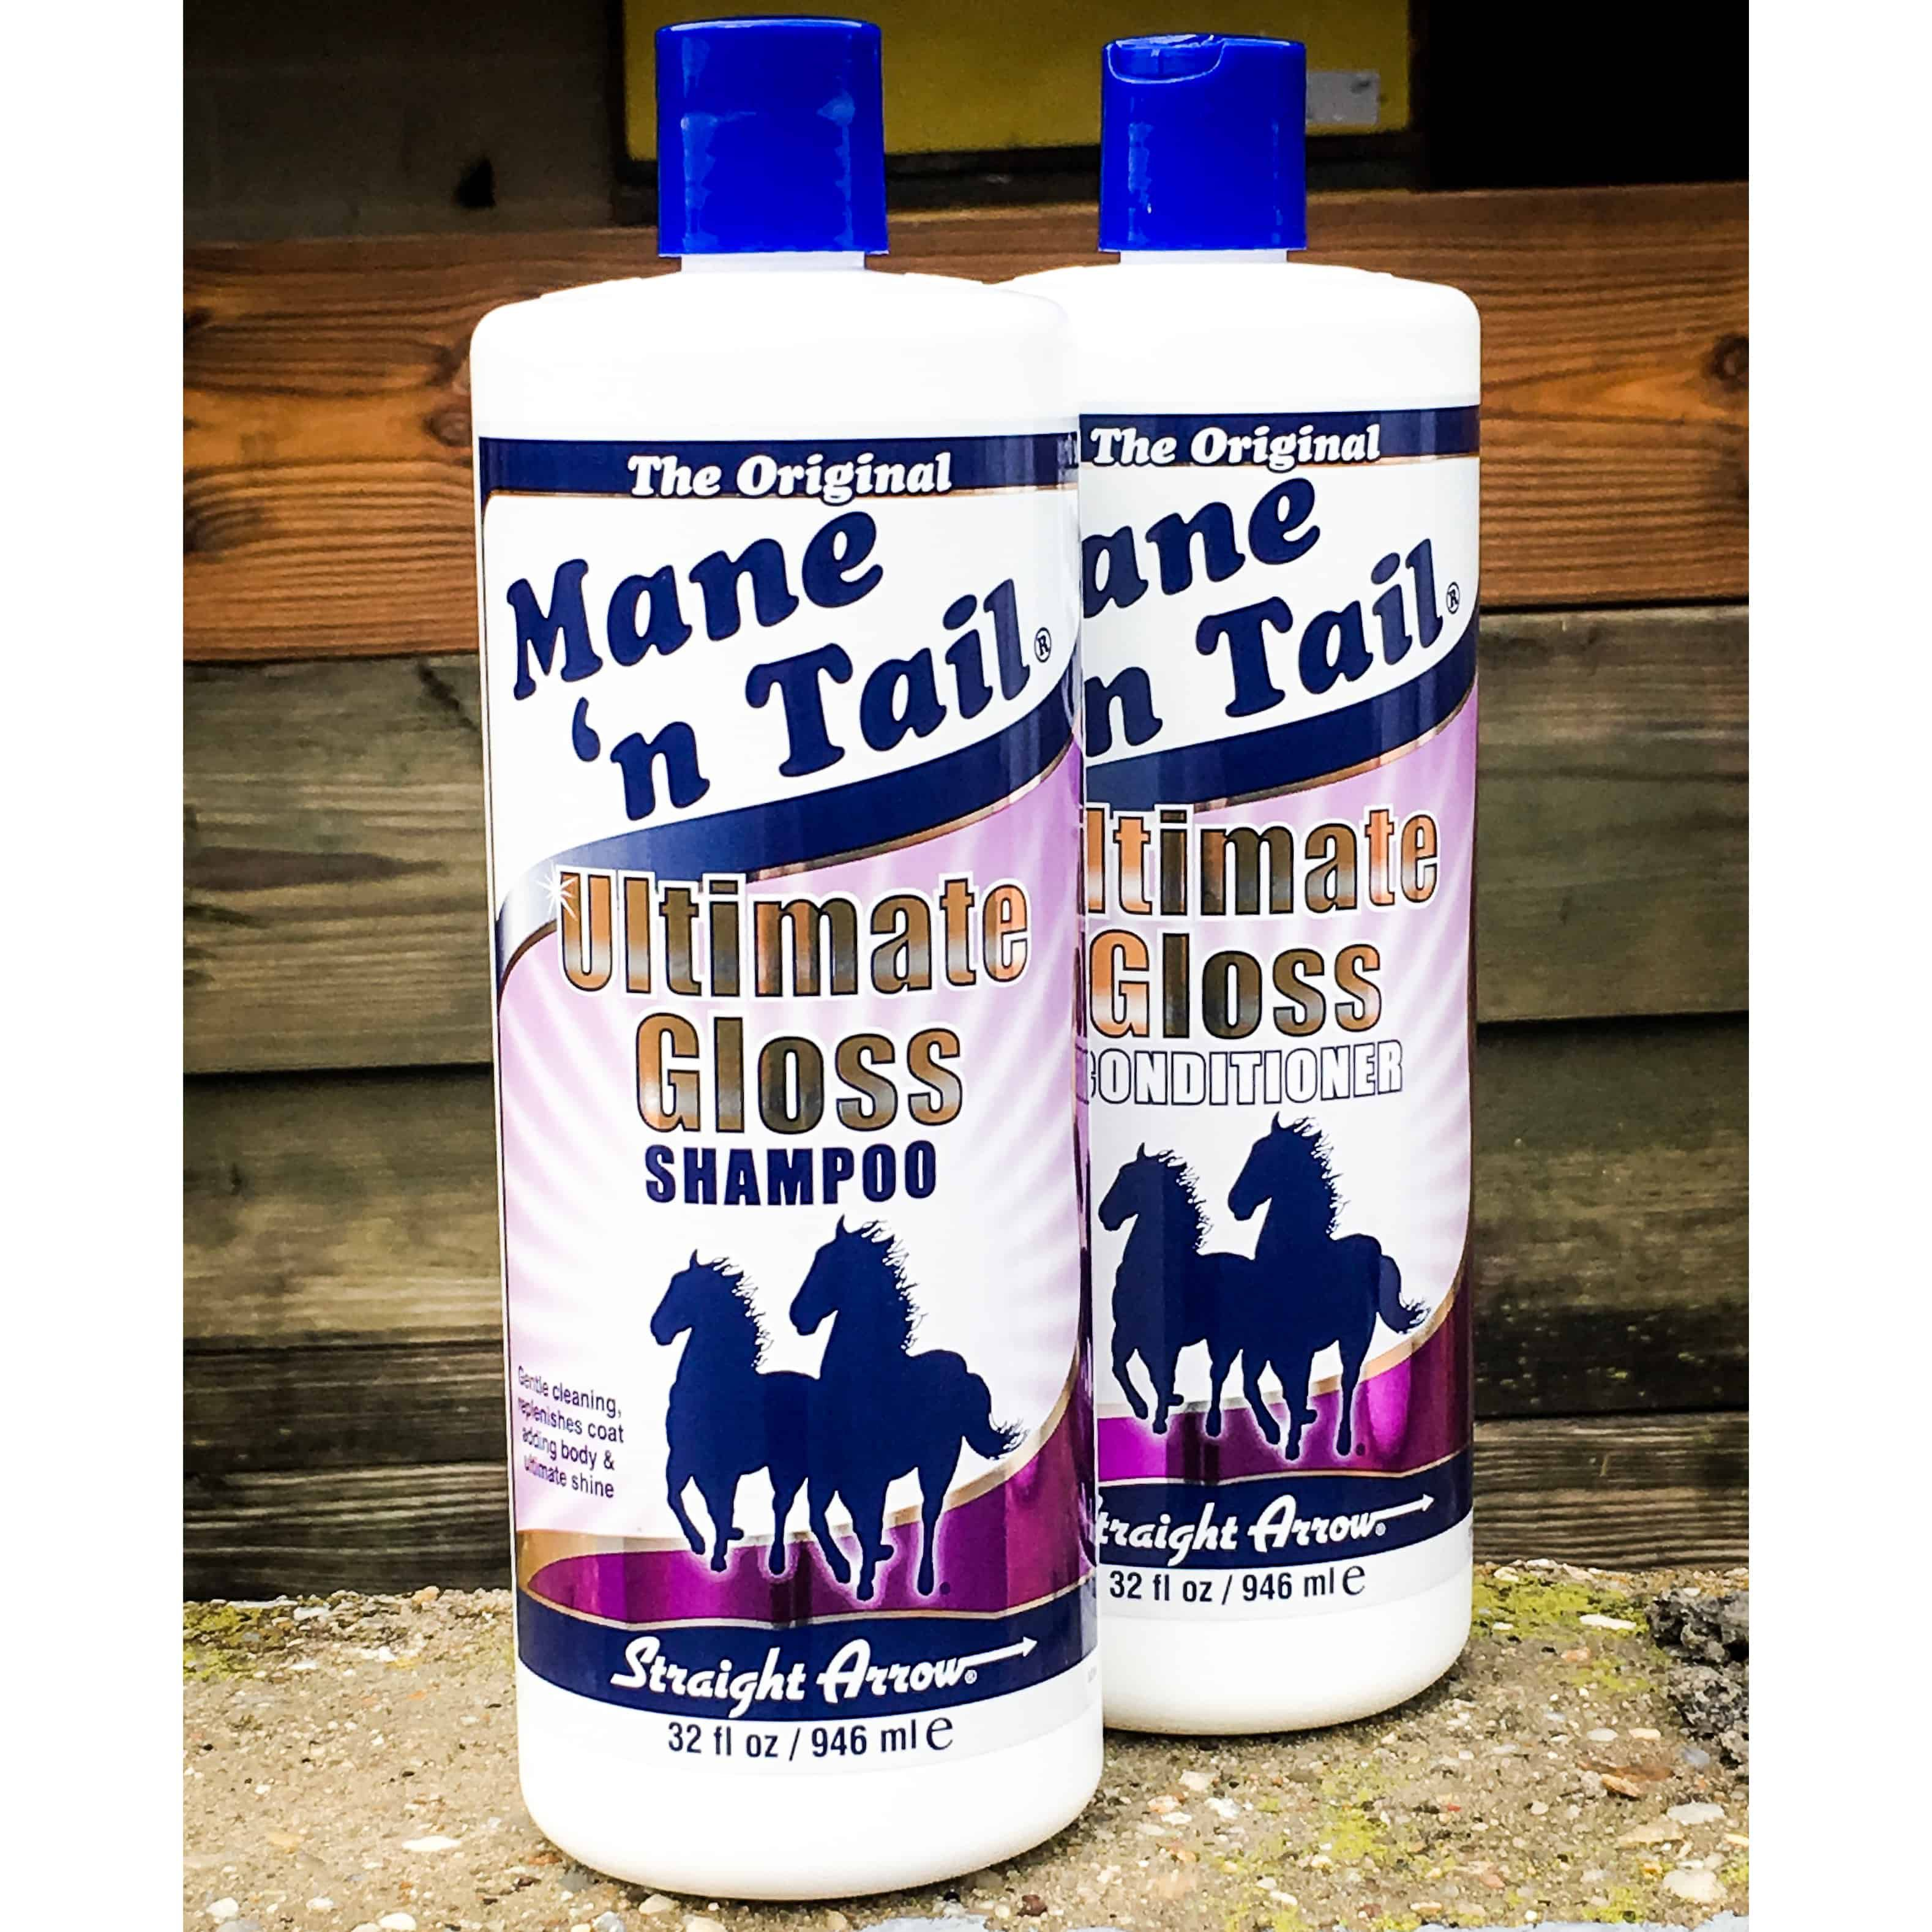 Mane 'n Tail Ultimate Gloss Shampoo and Conditioner